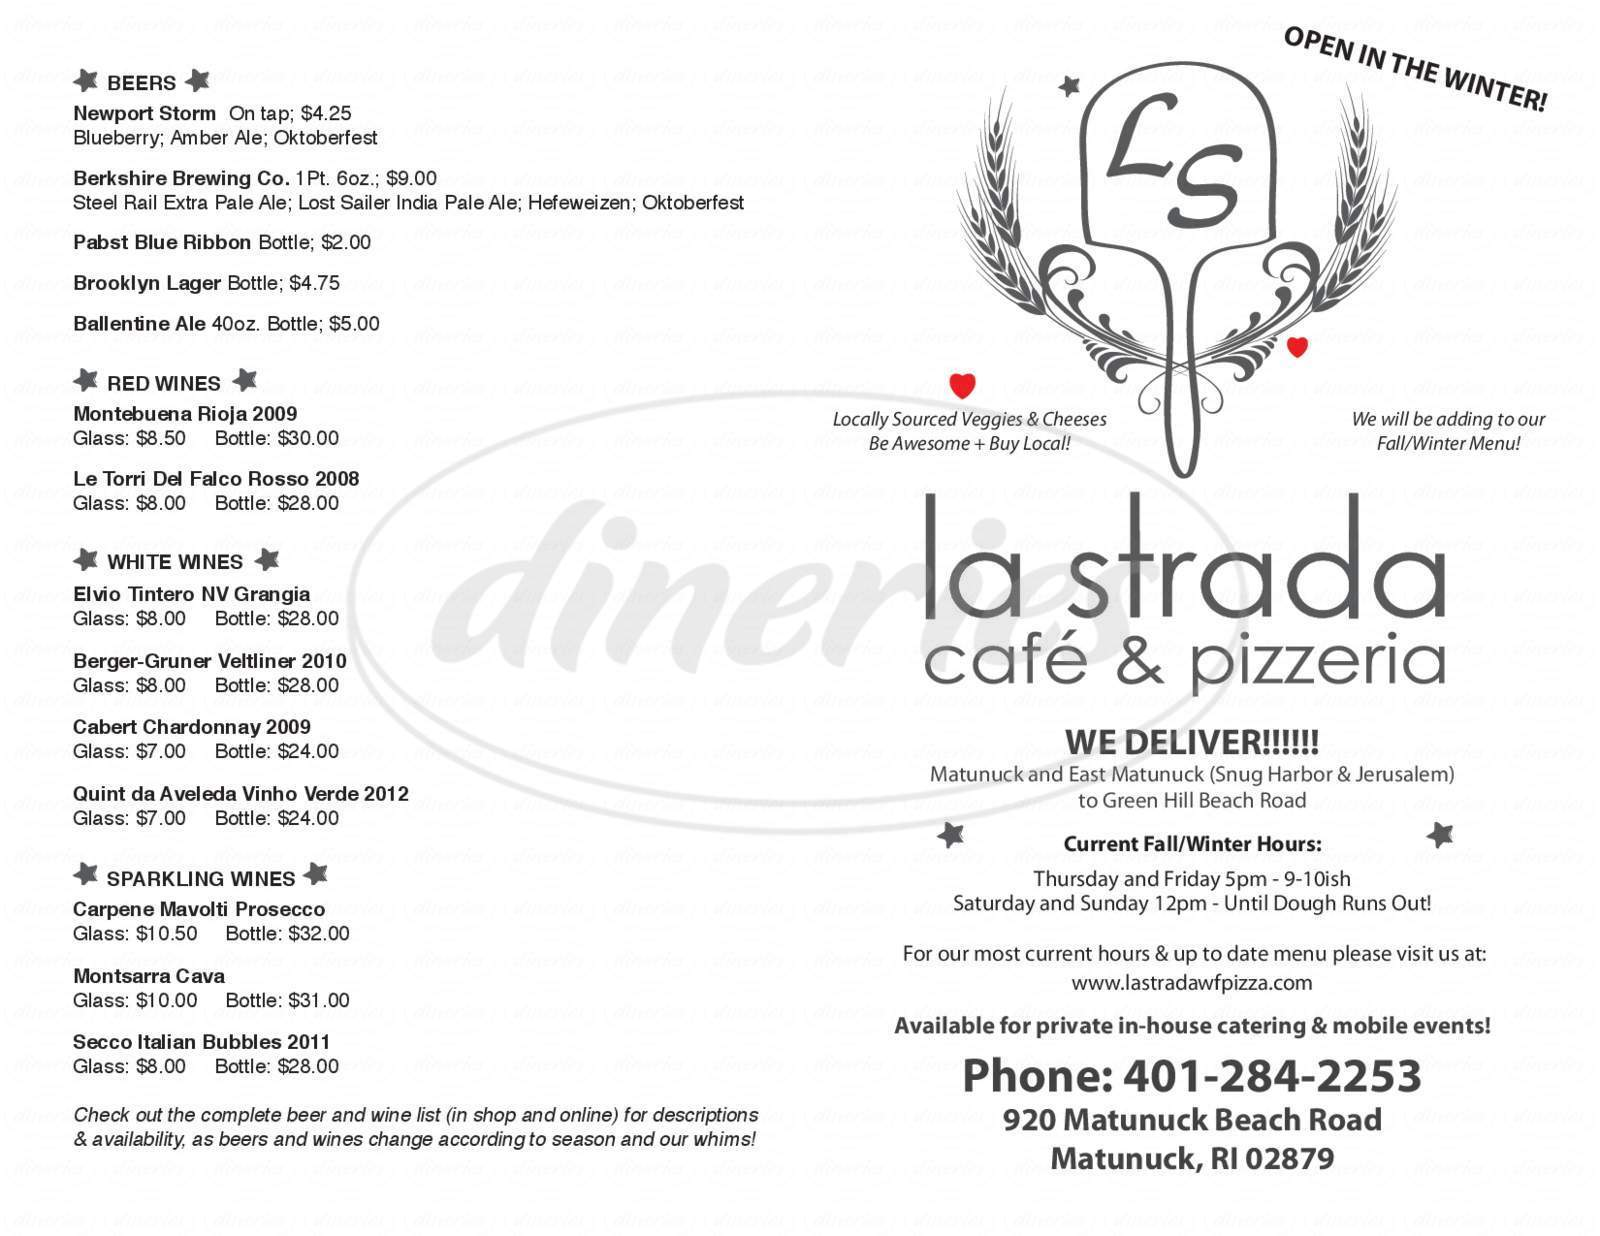 menu for La Strada Café & Pizzeria